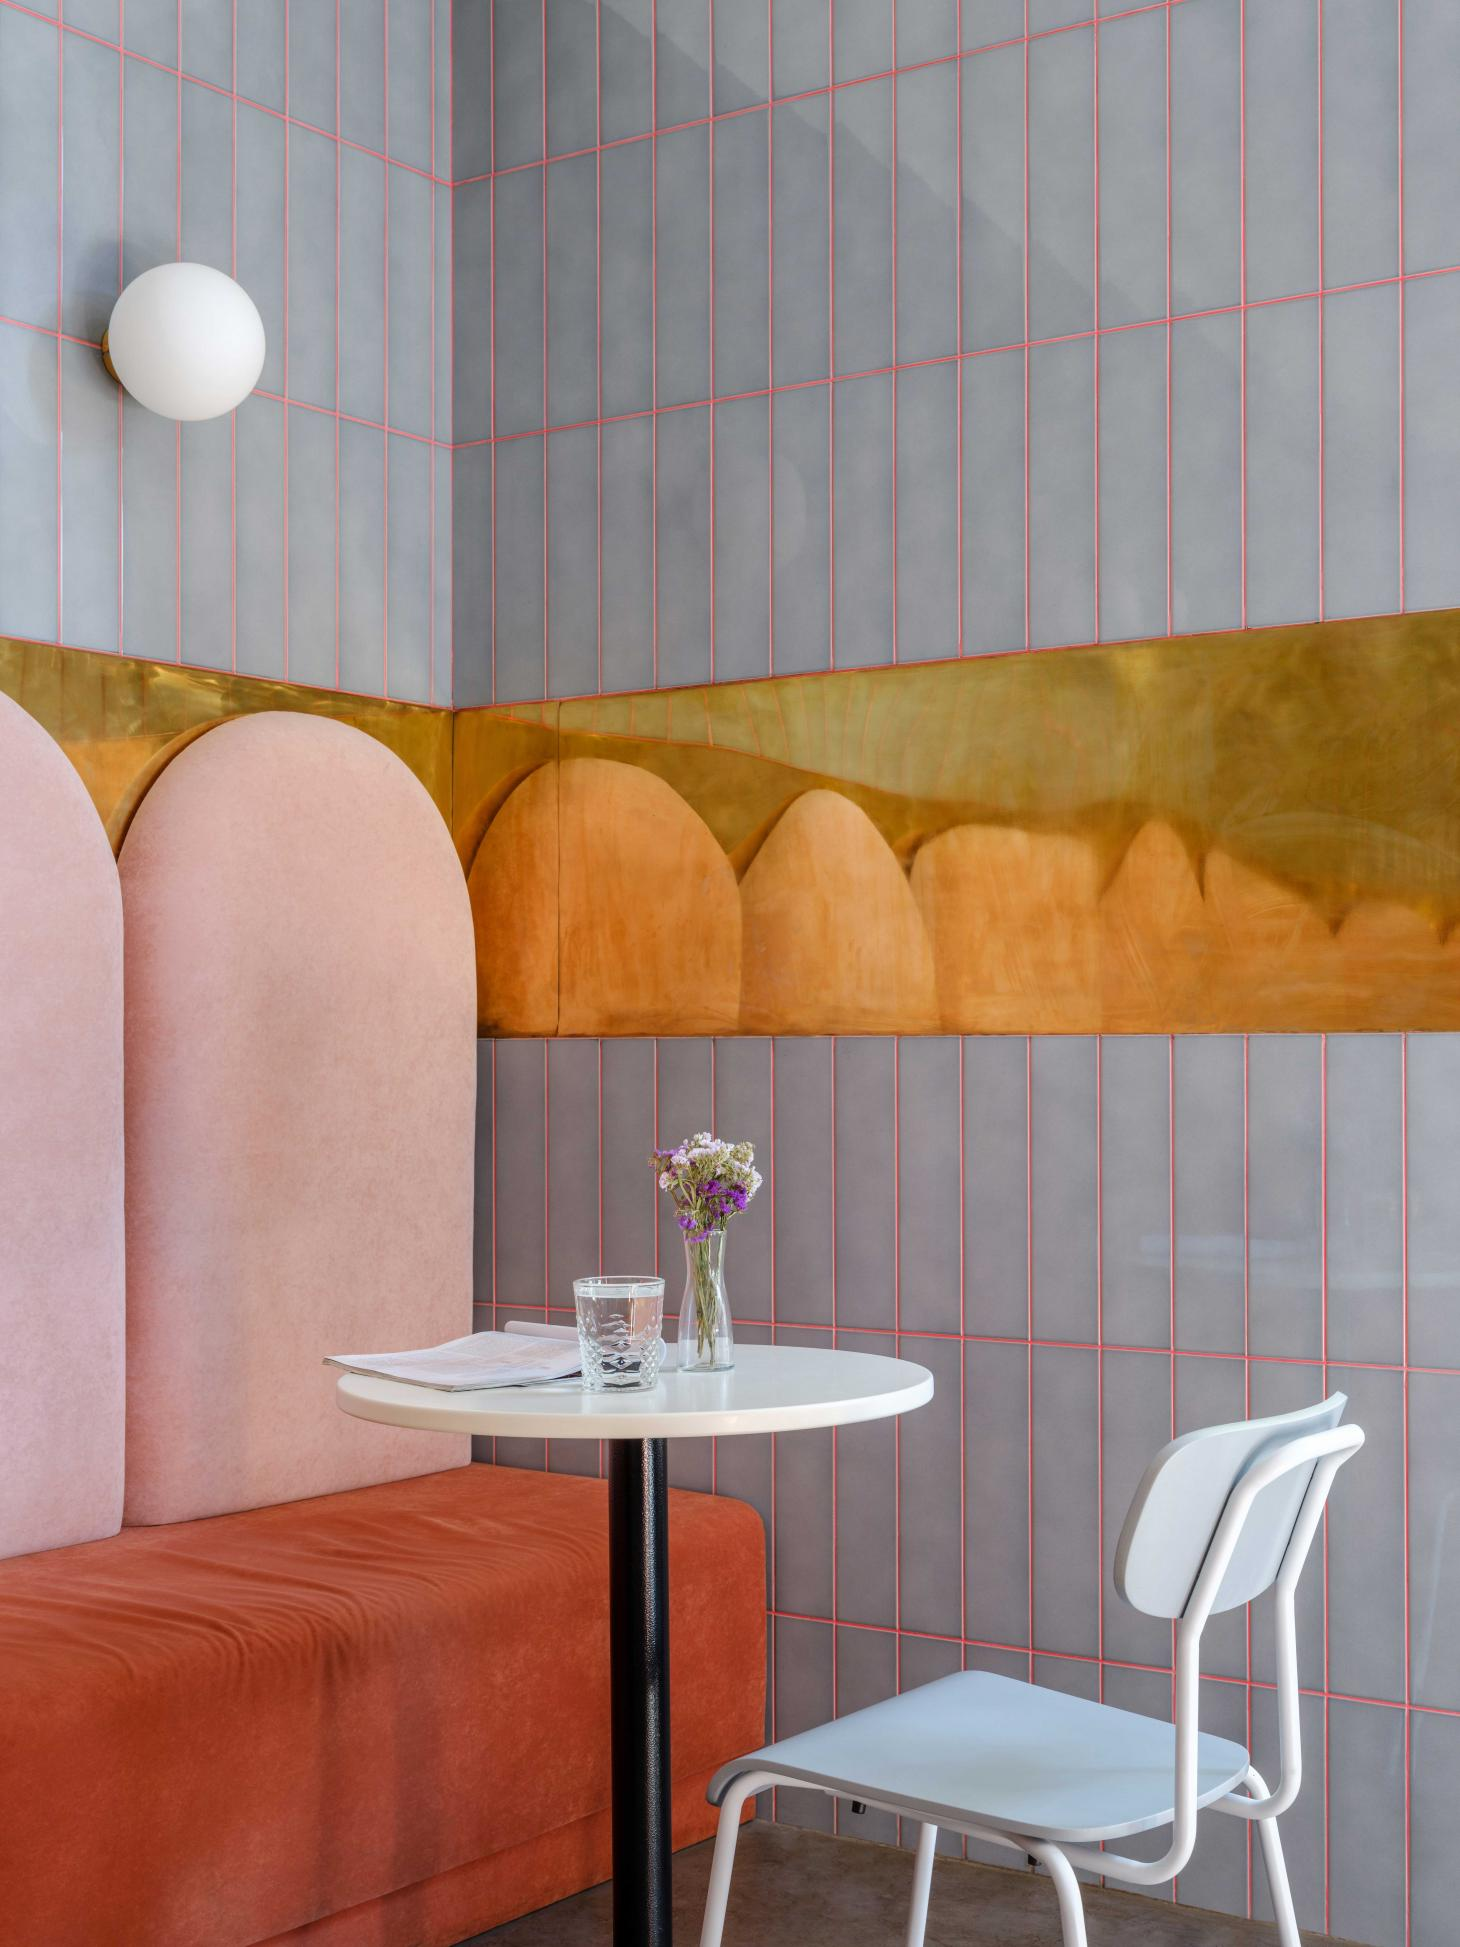 The Wes Anderson,inspired Breadway Bakery opens in Ukraine